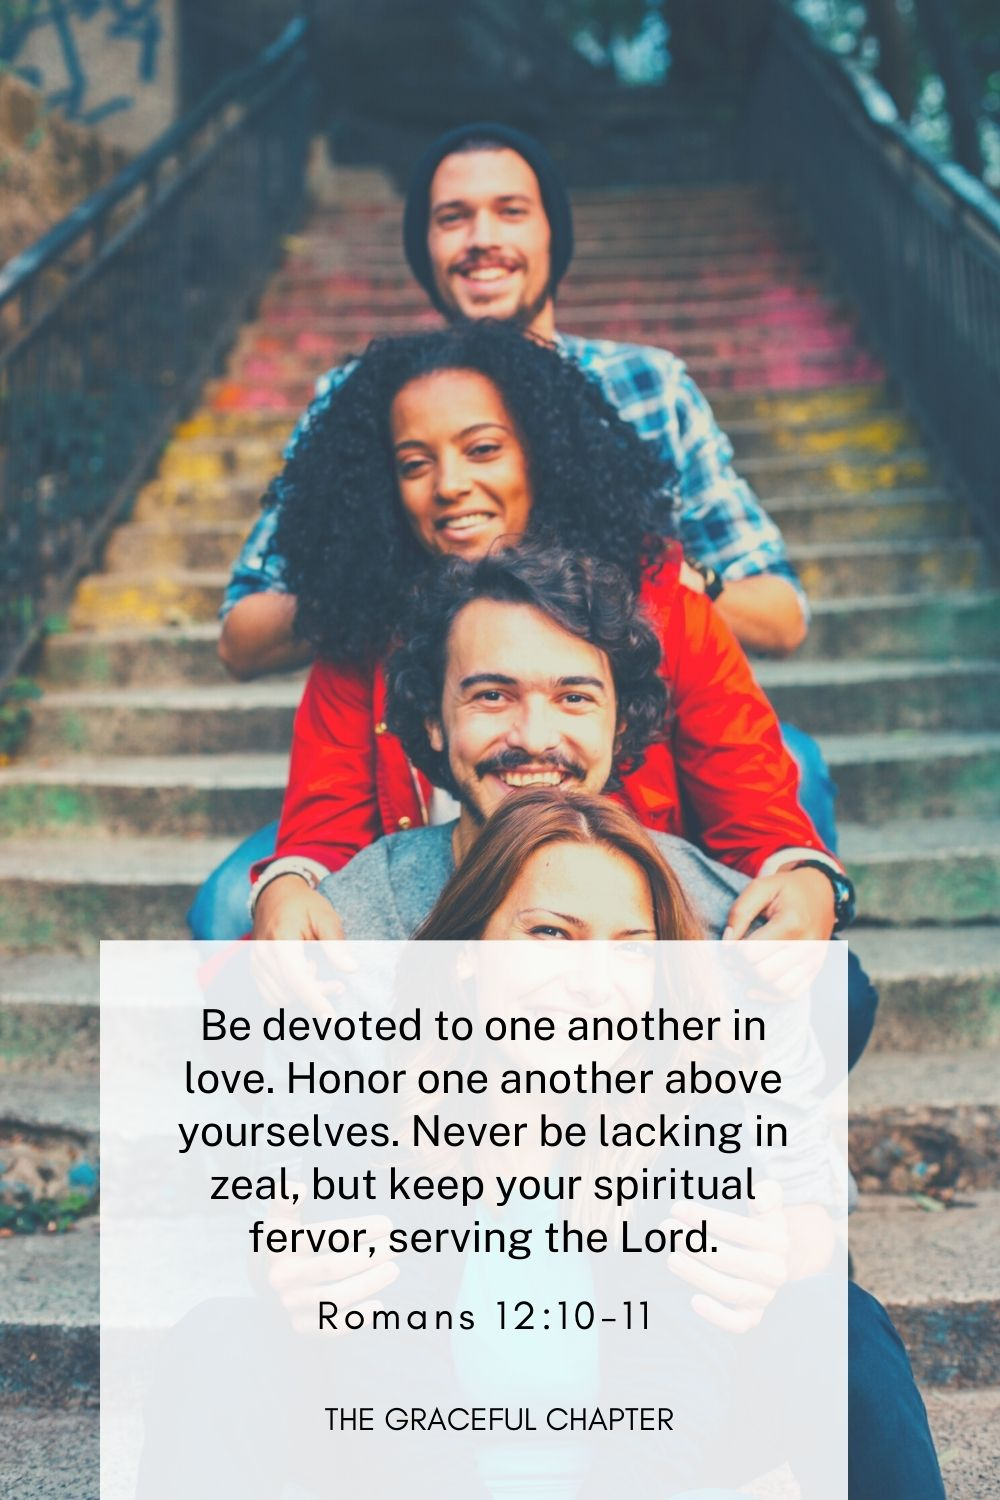 Be devoted to one another in love. Honor one another above yourselves. Never be lacking in zeal, but keep your spiritual fervor, serving the Lord. Romans 12:10-11